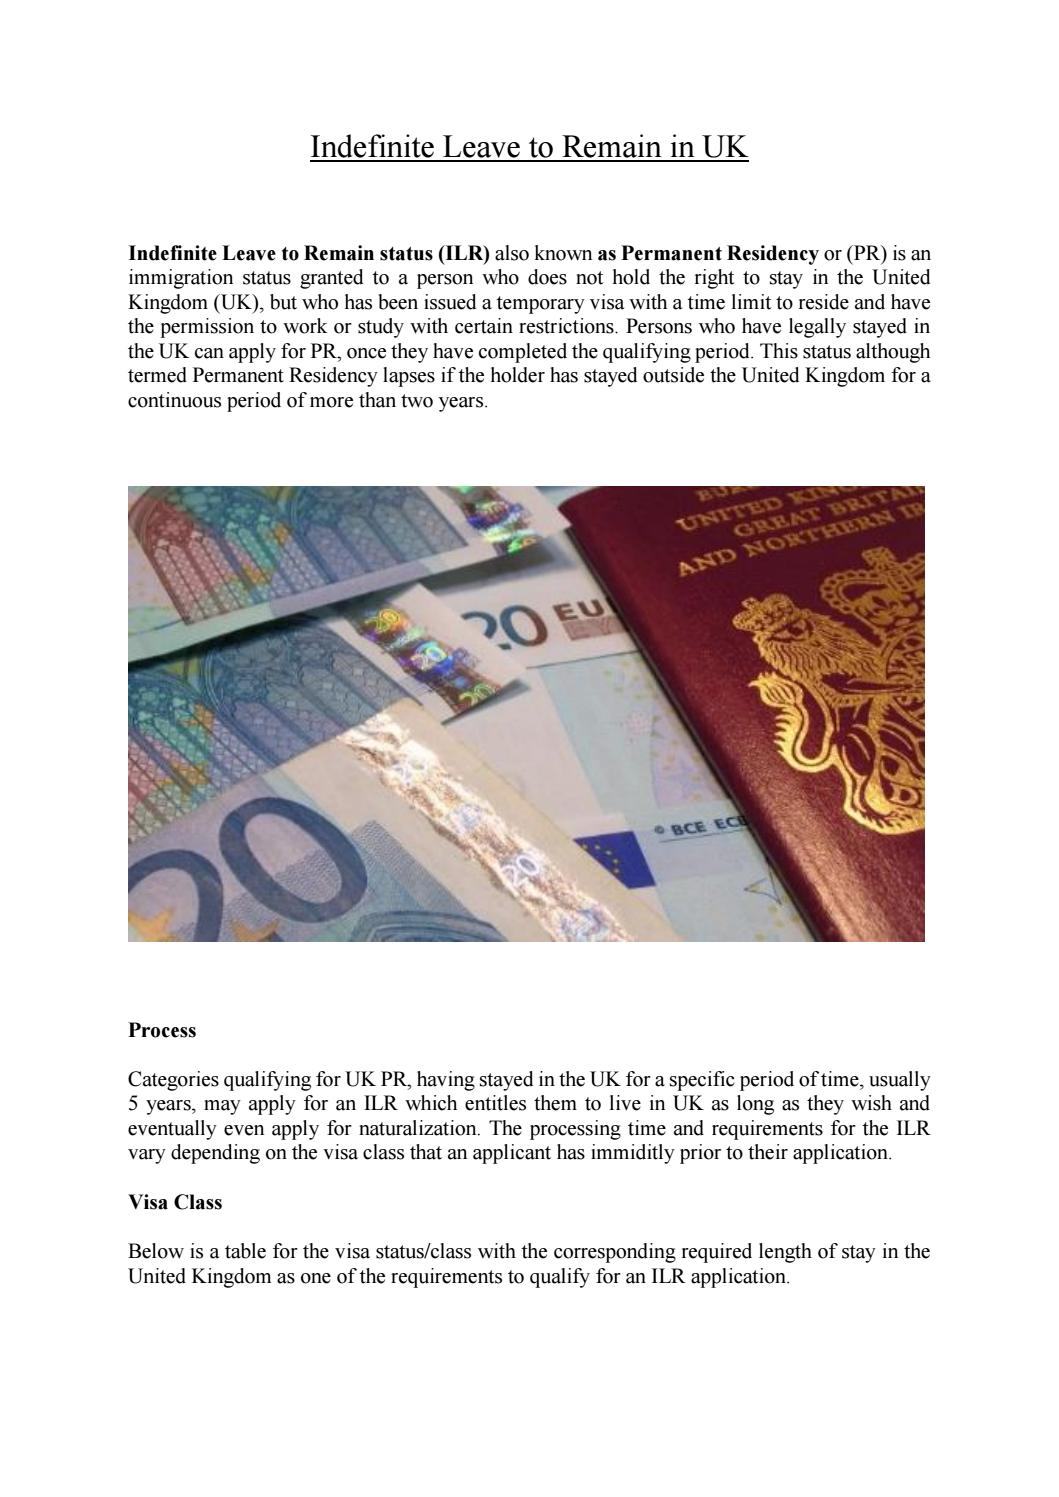 Indefinite leave to remain in uk by ViraUK - issuu